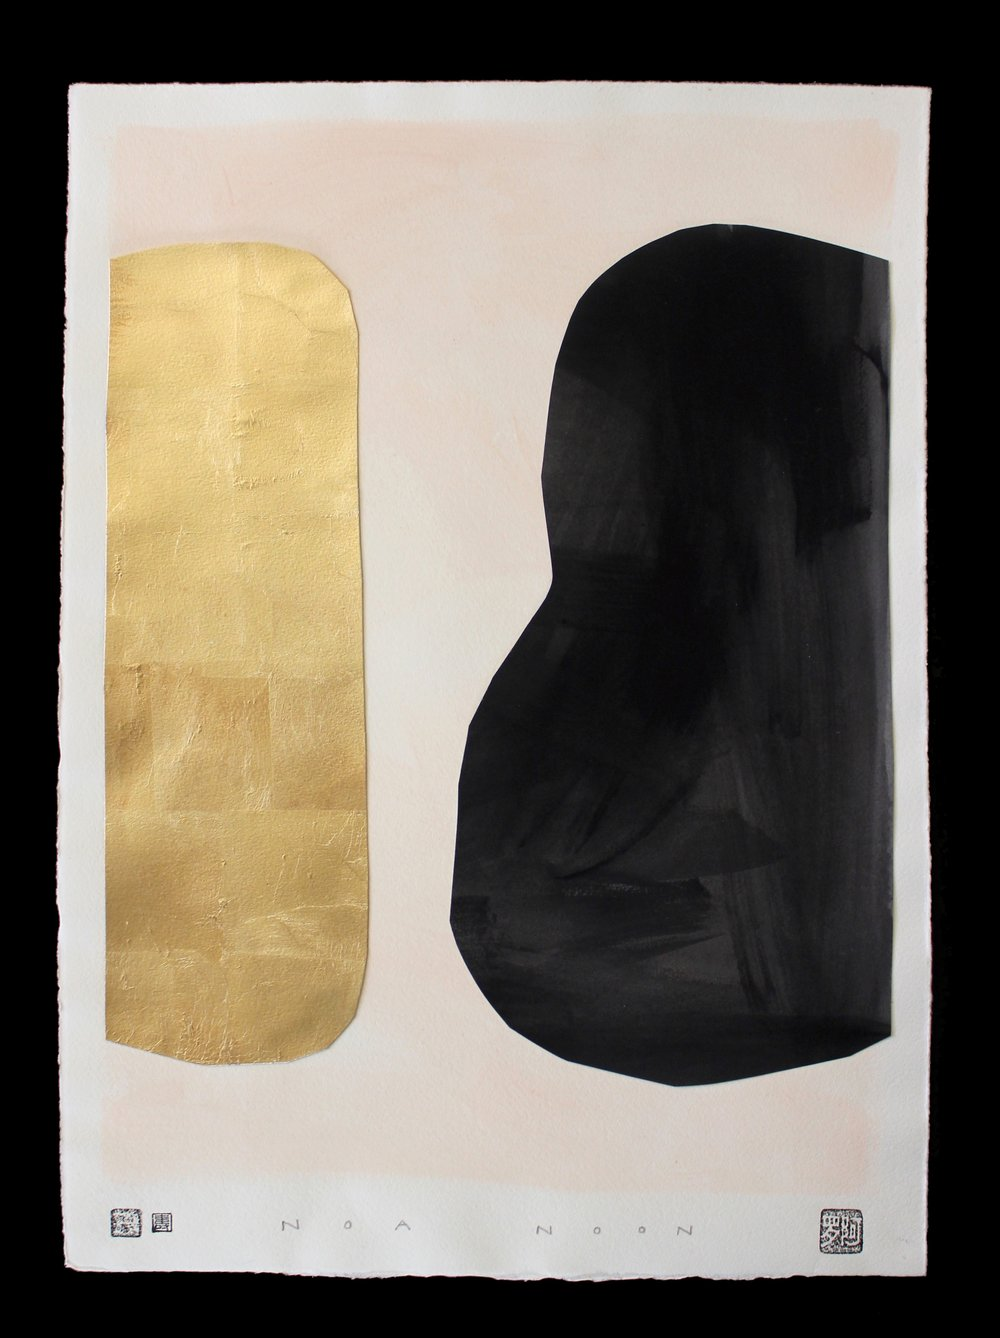 COLLAGE NO. 1 - 40 X 50 CM COLLAGE ON HANDMADE PAPER WITH GOLD LEAF AND BLACK PIGMENT PAINT.